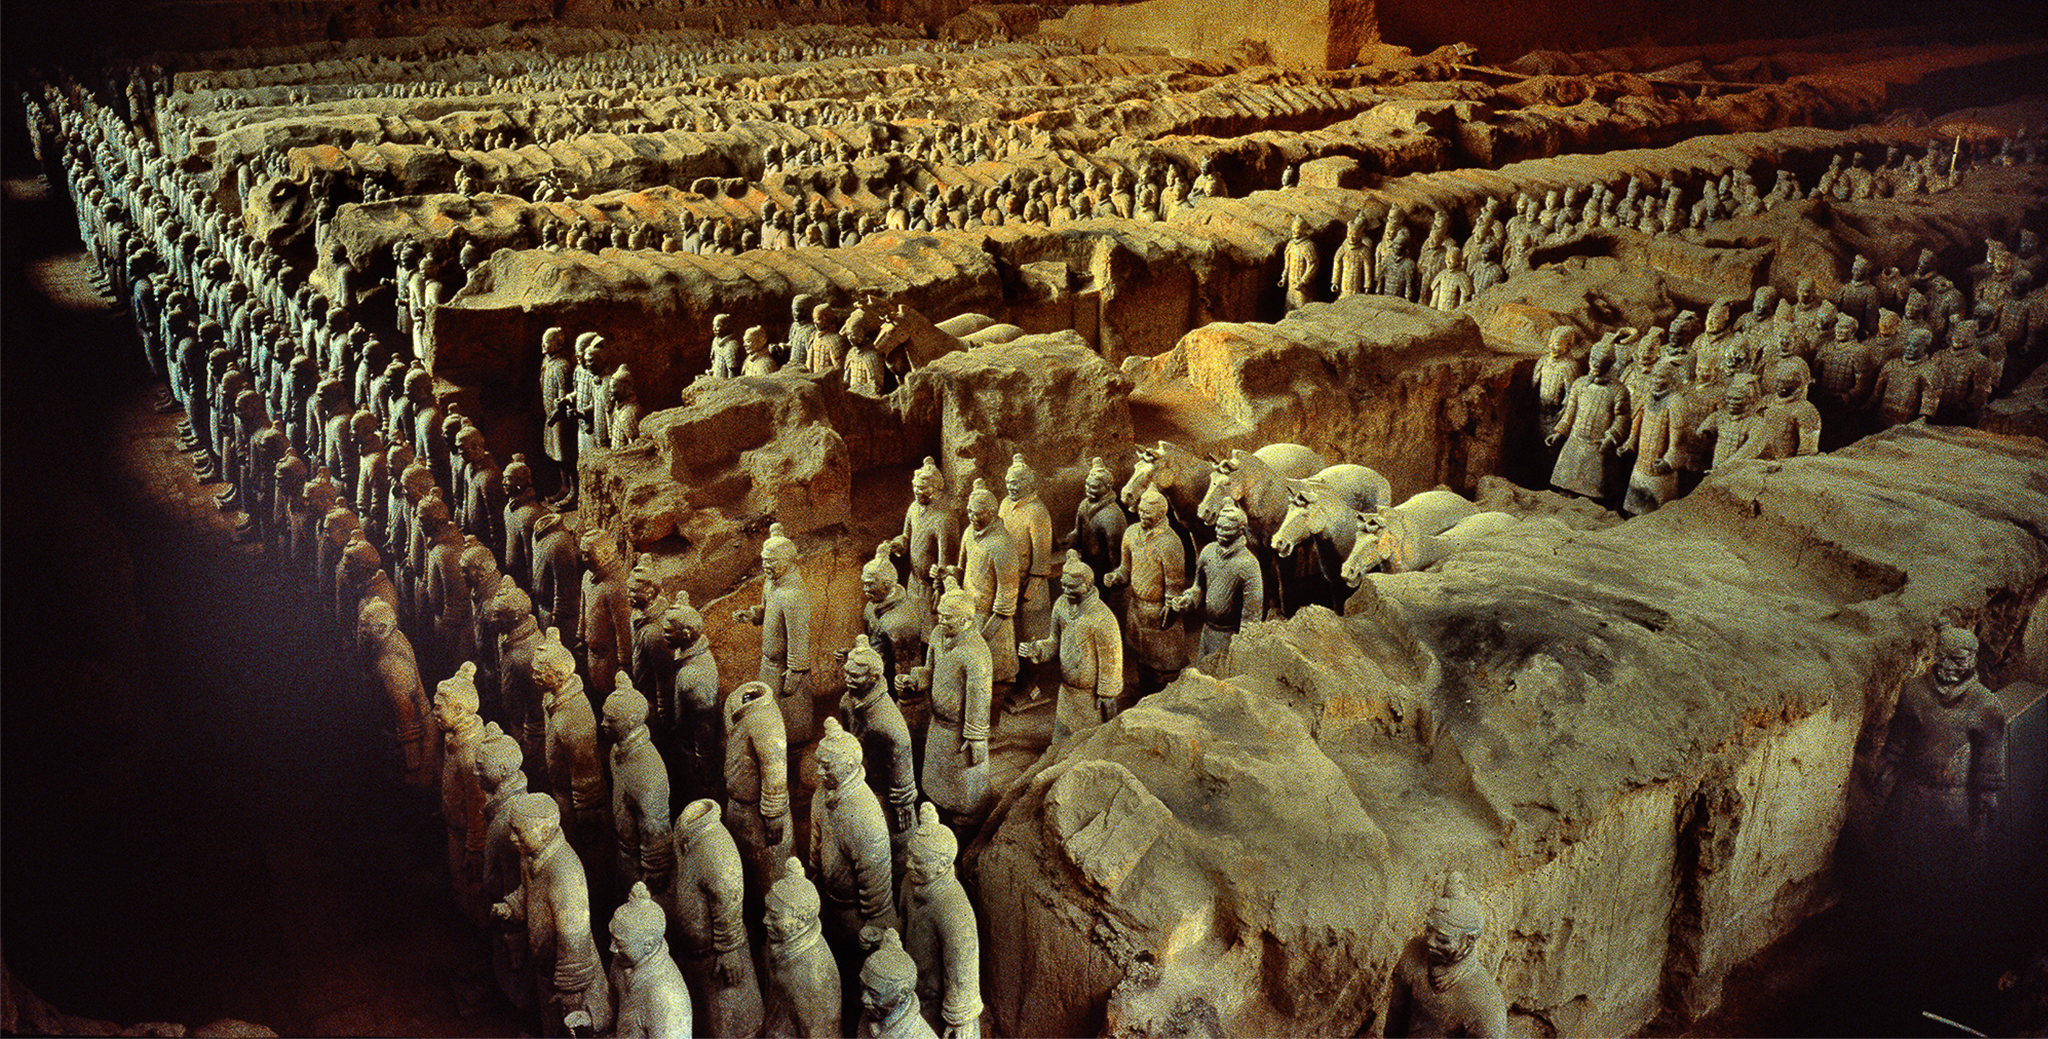 Longbow archers stand in front rows of China's great terracotta army.